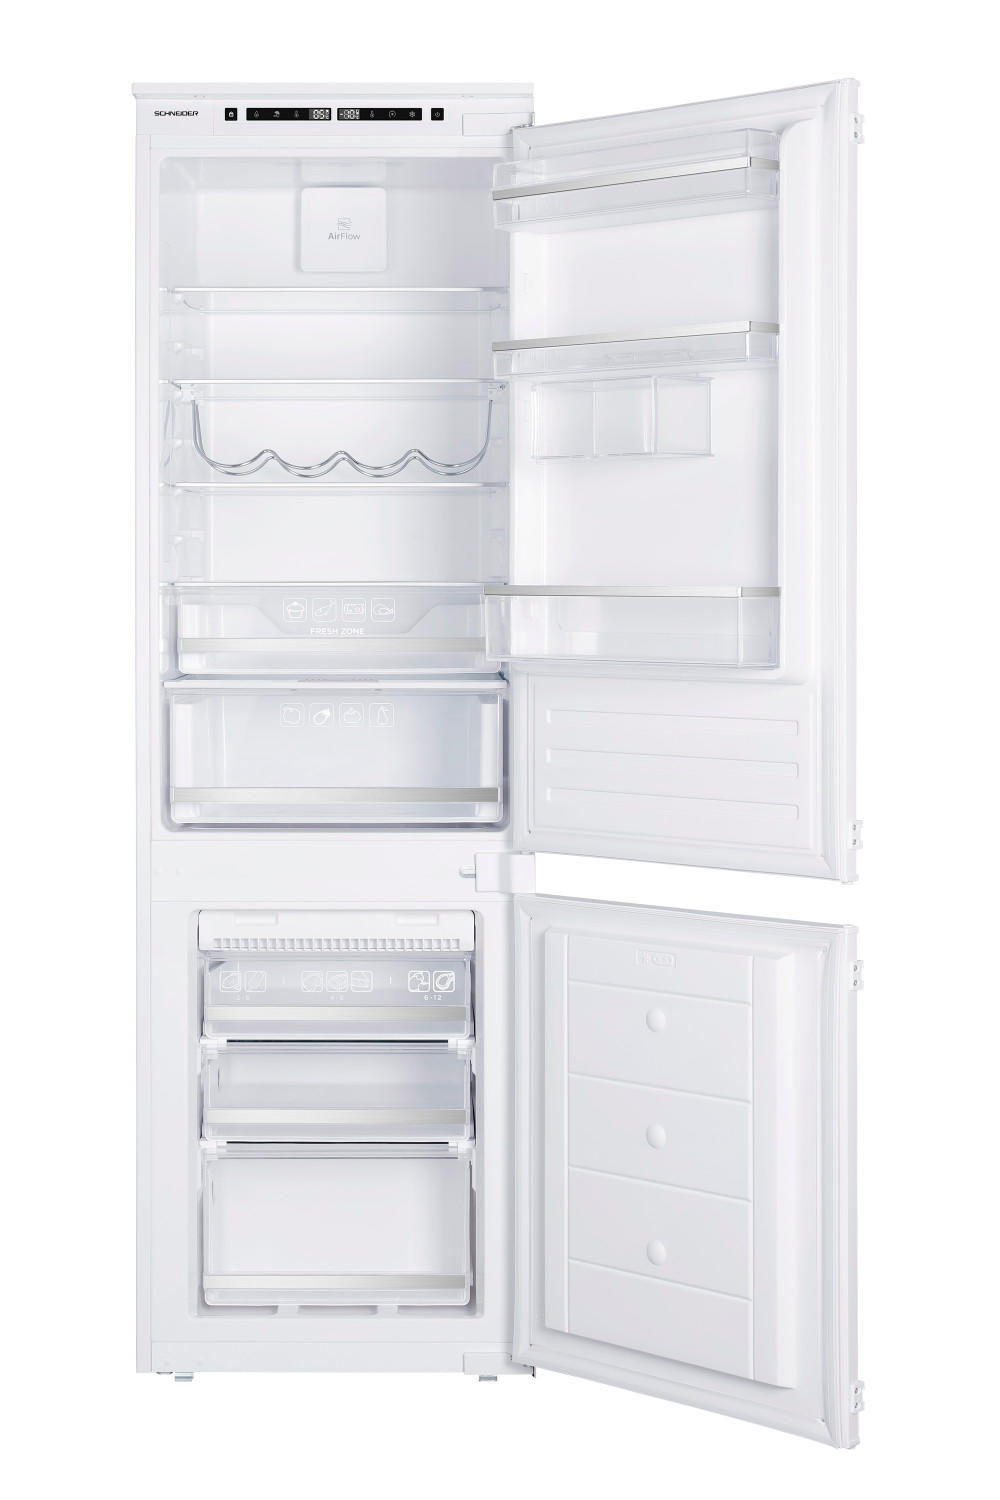 Built-in freezer 177 cm No Frost - Schneider